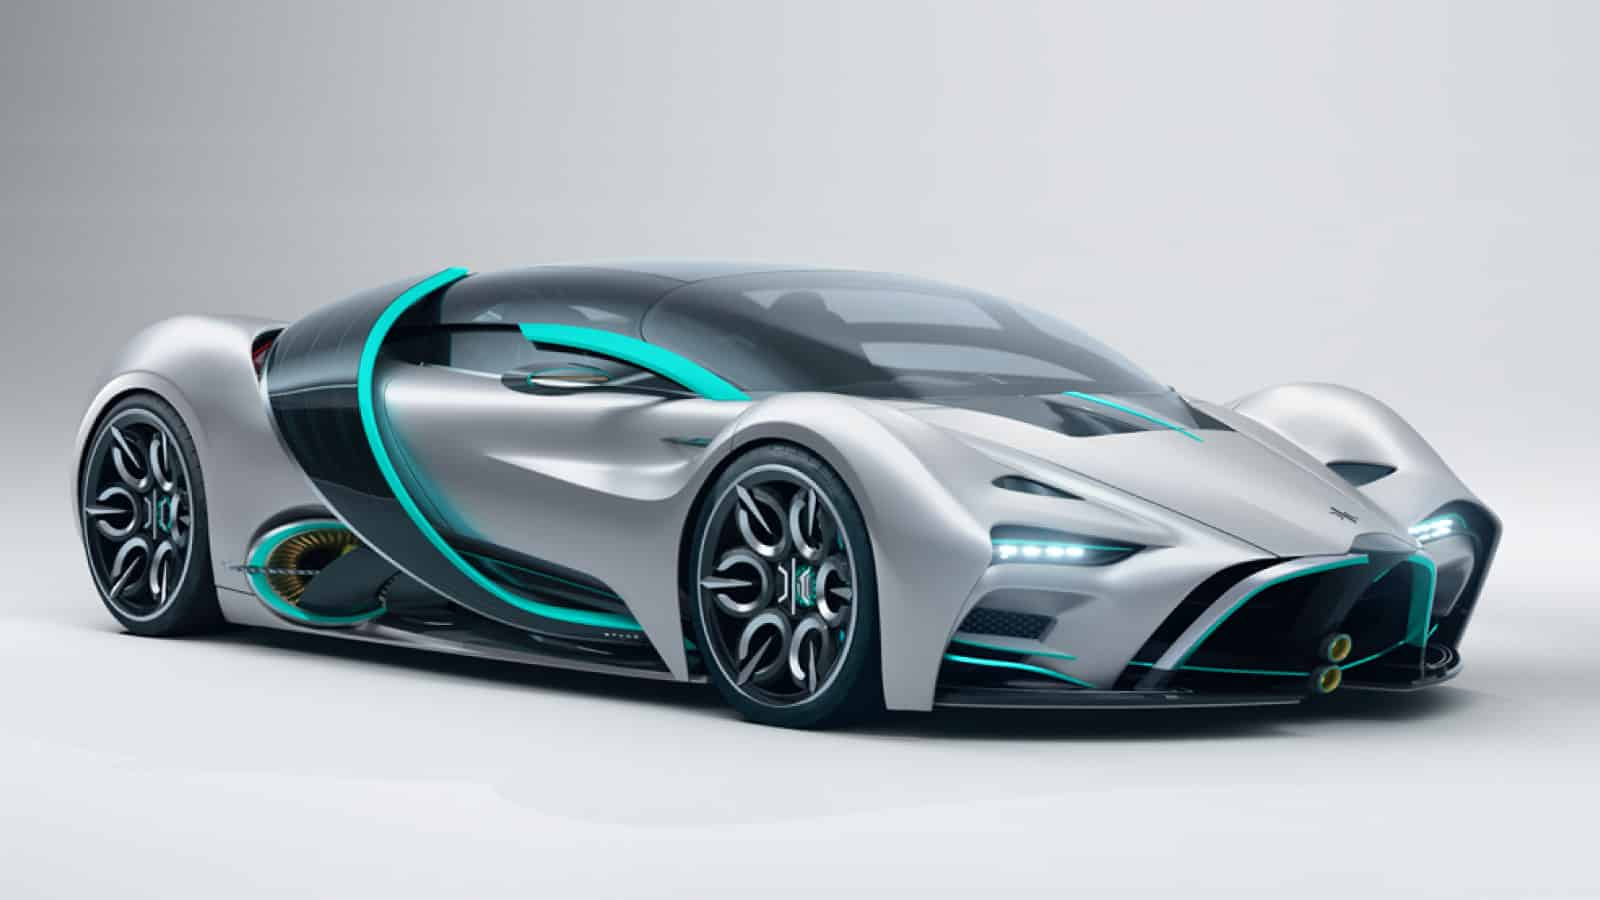 Hyperion XP-1 : A Hydrogen-powered Hypercar